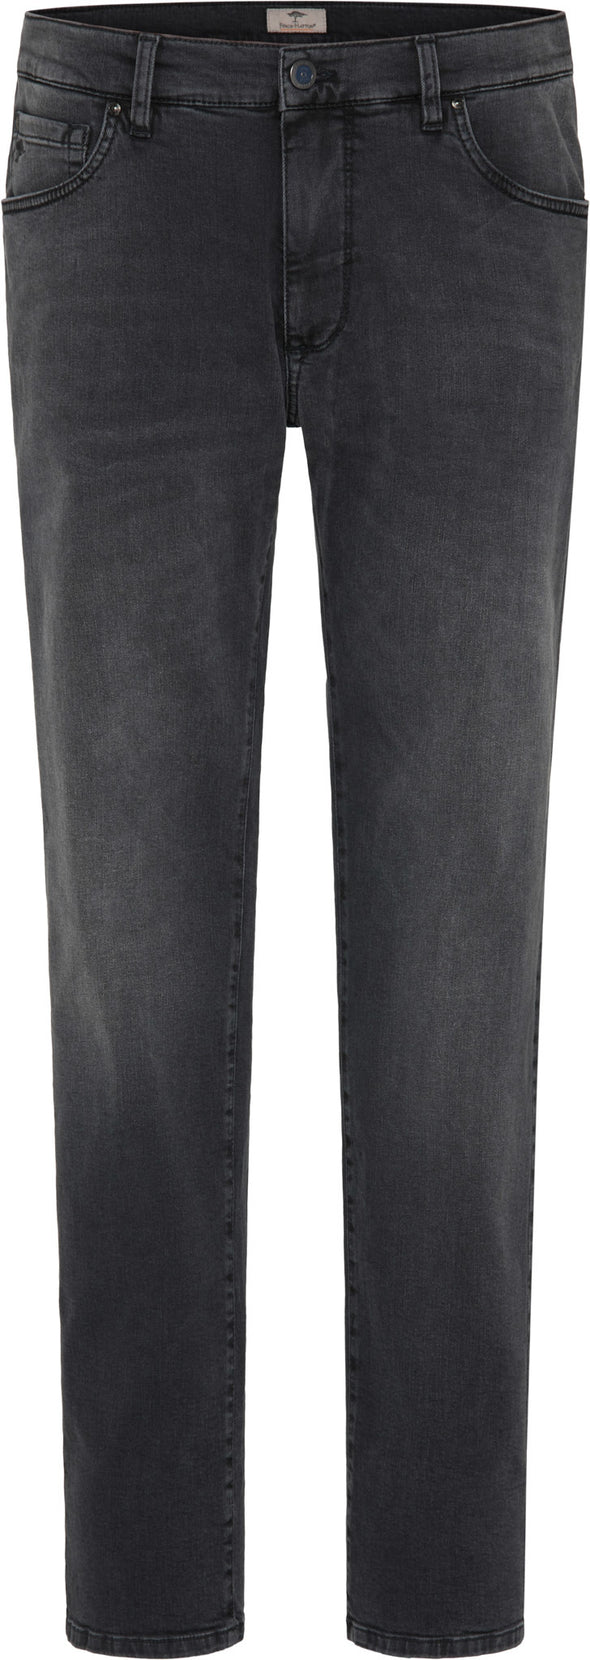 Fynch Hatton Durban Anthracite Denim Jeans